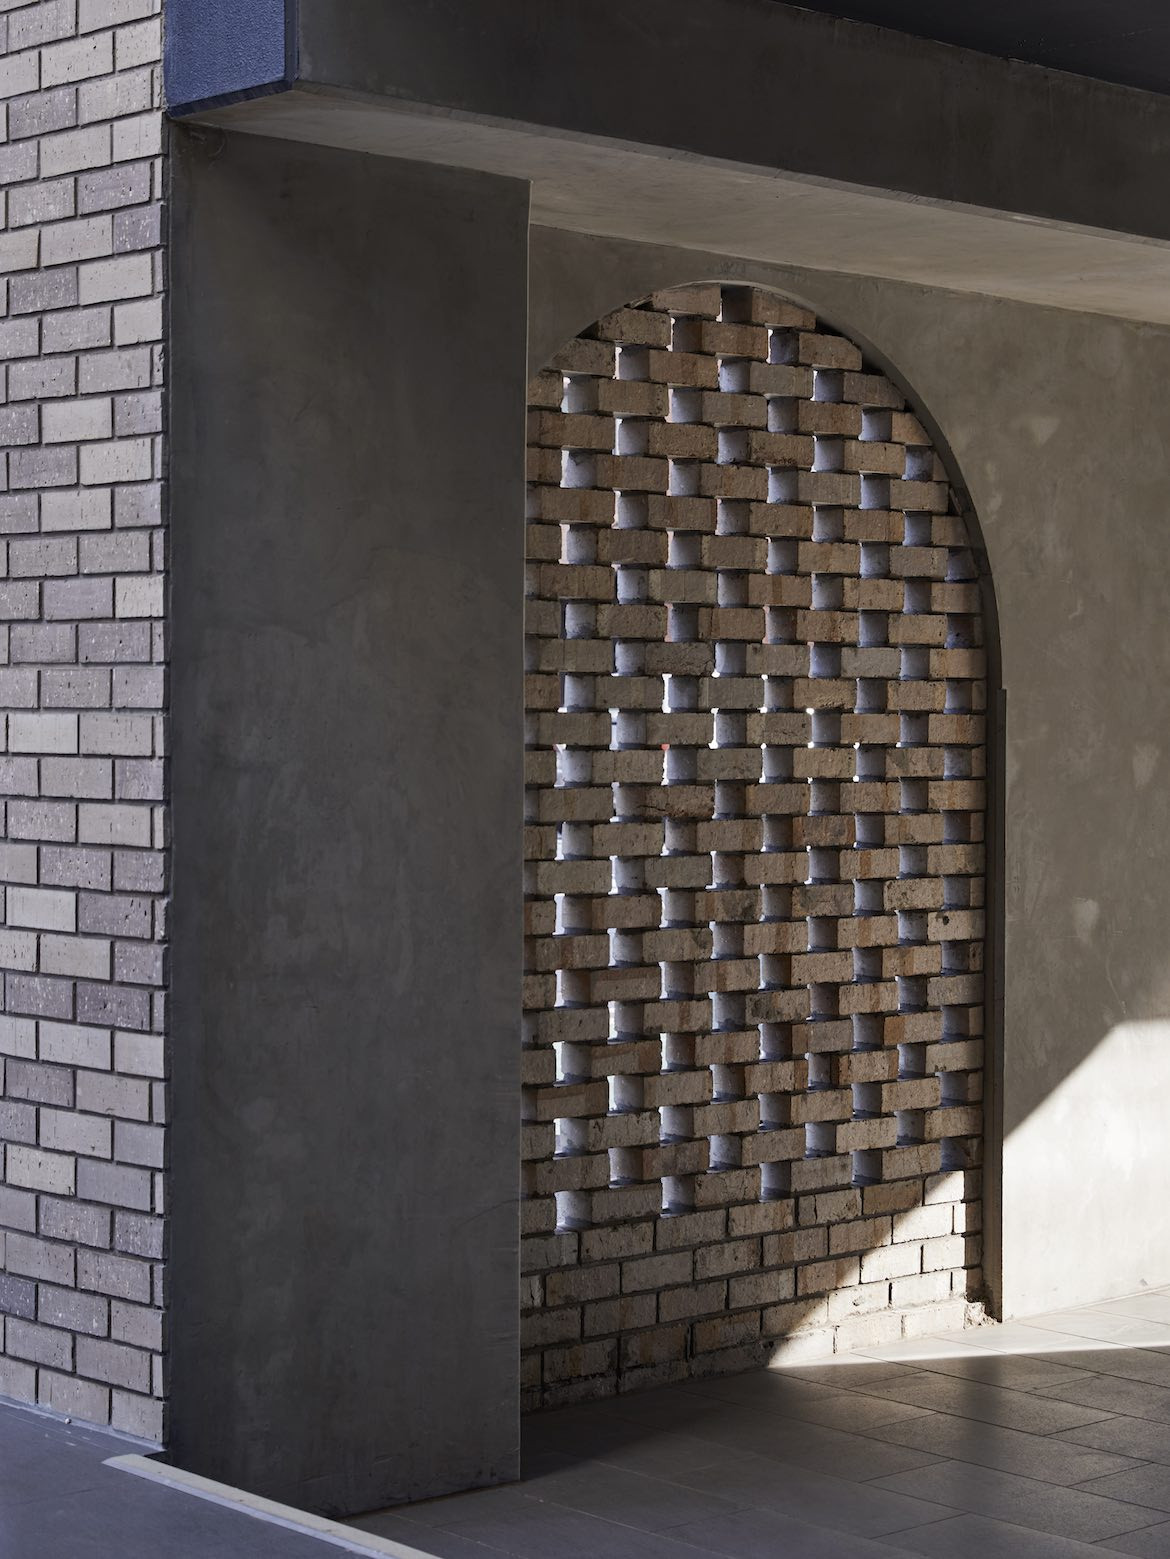 External brick walls of the McCluskey Studio and SJB designed medical practice.